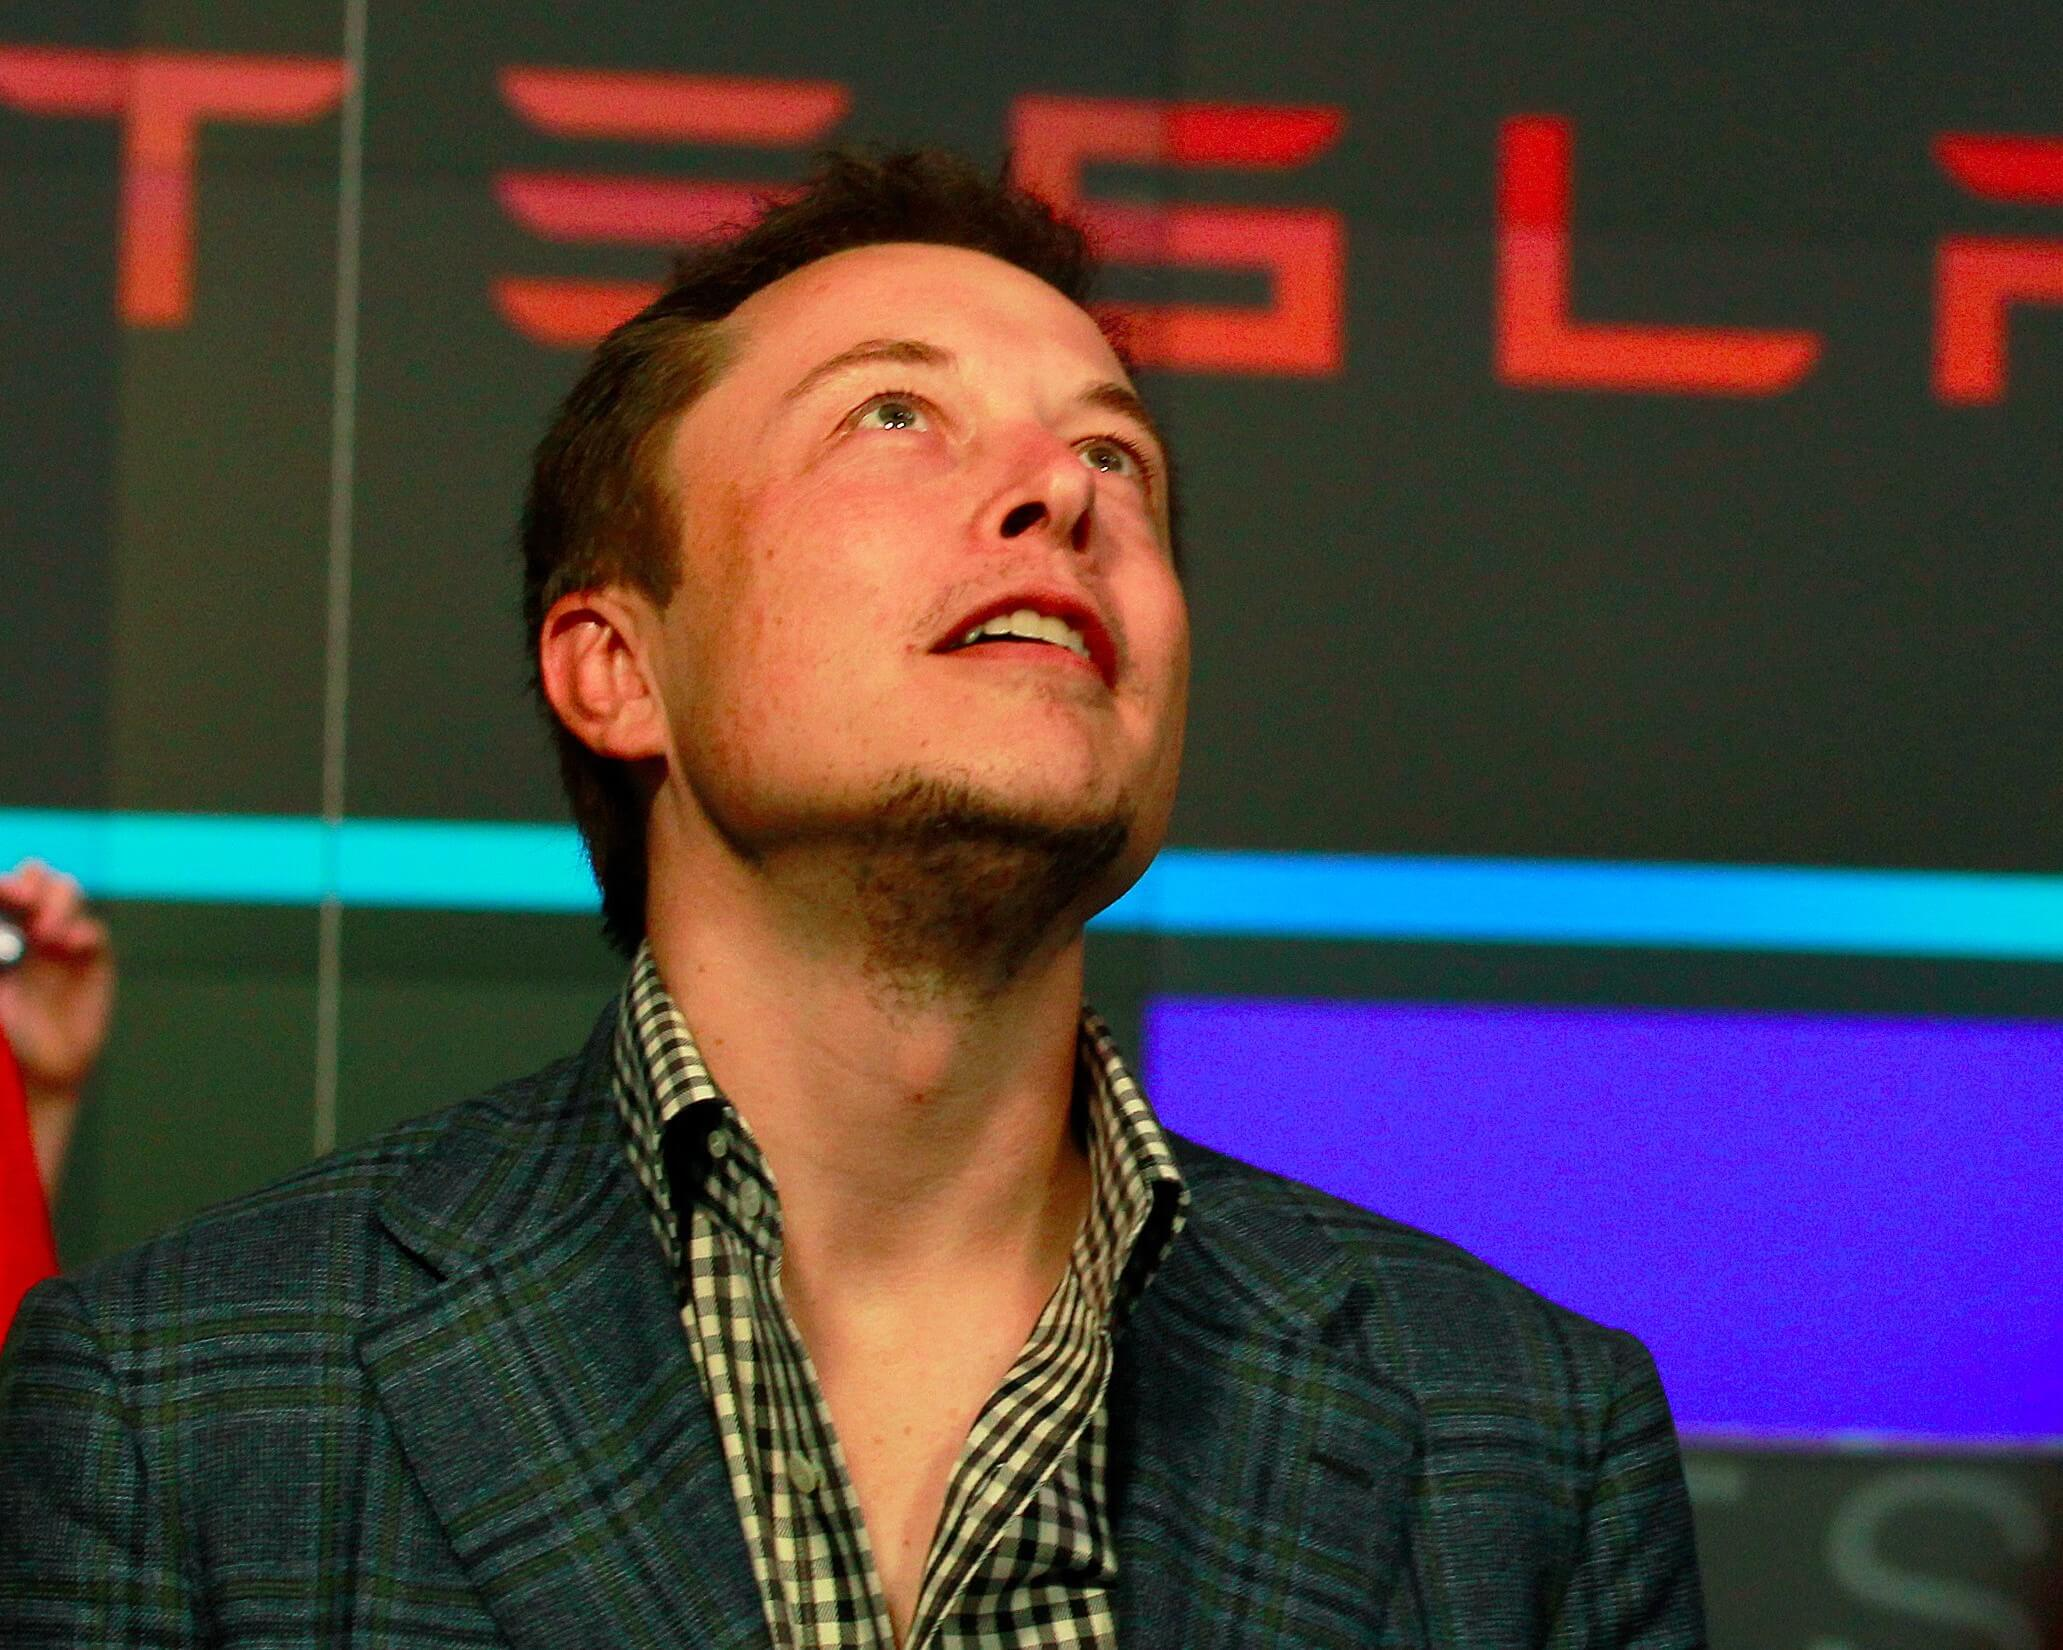 WILL TESLA SURVIVE THE TEST OF TIME?